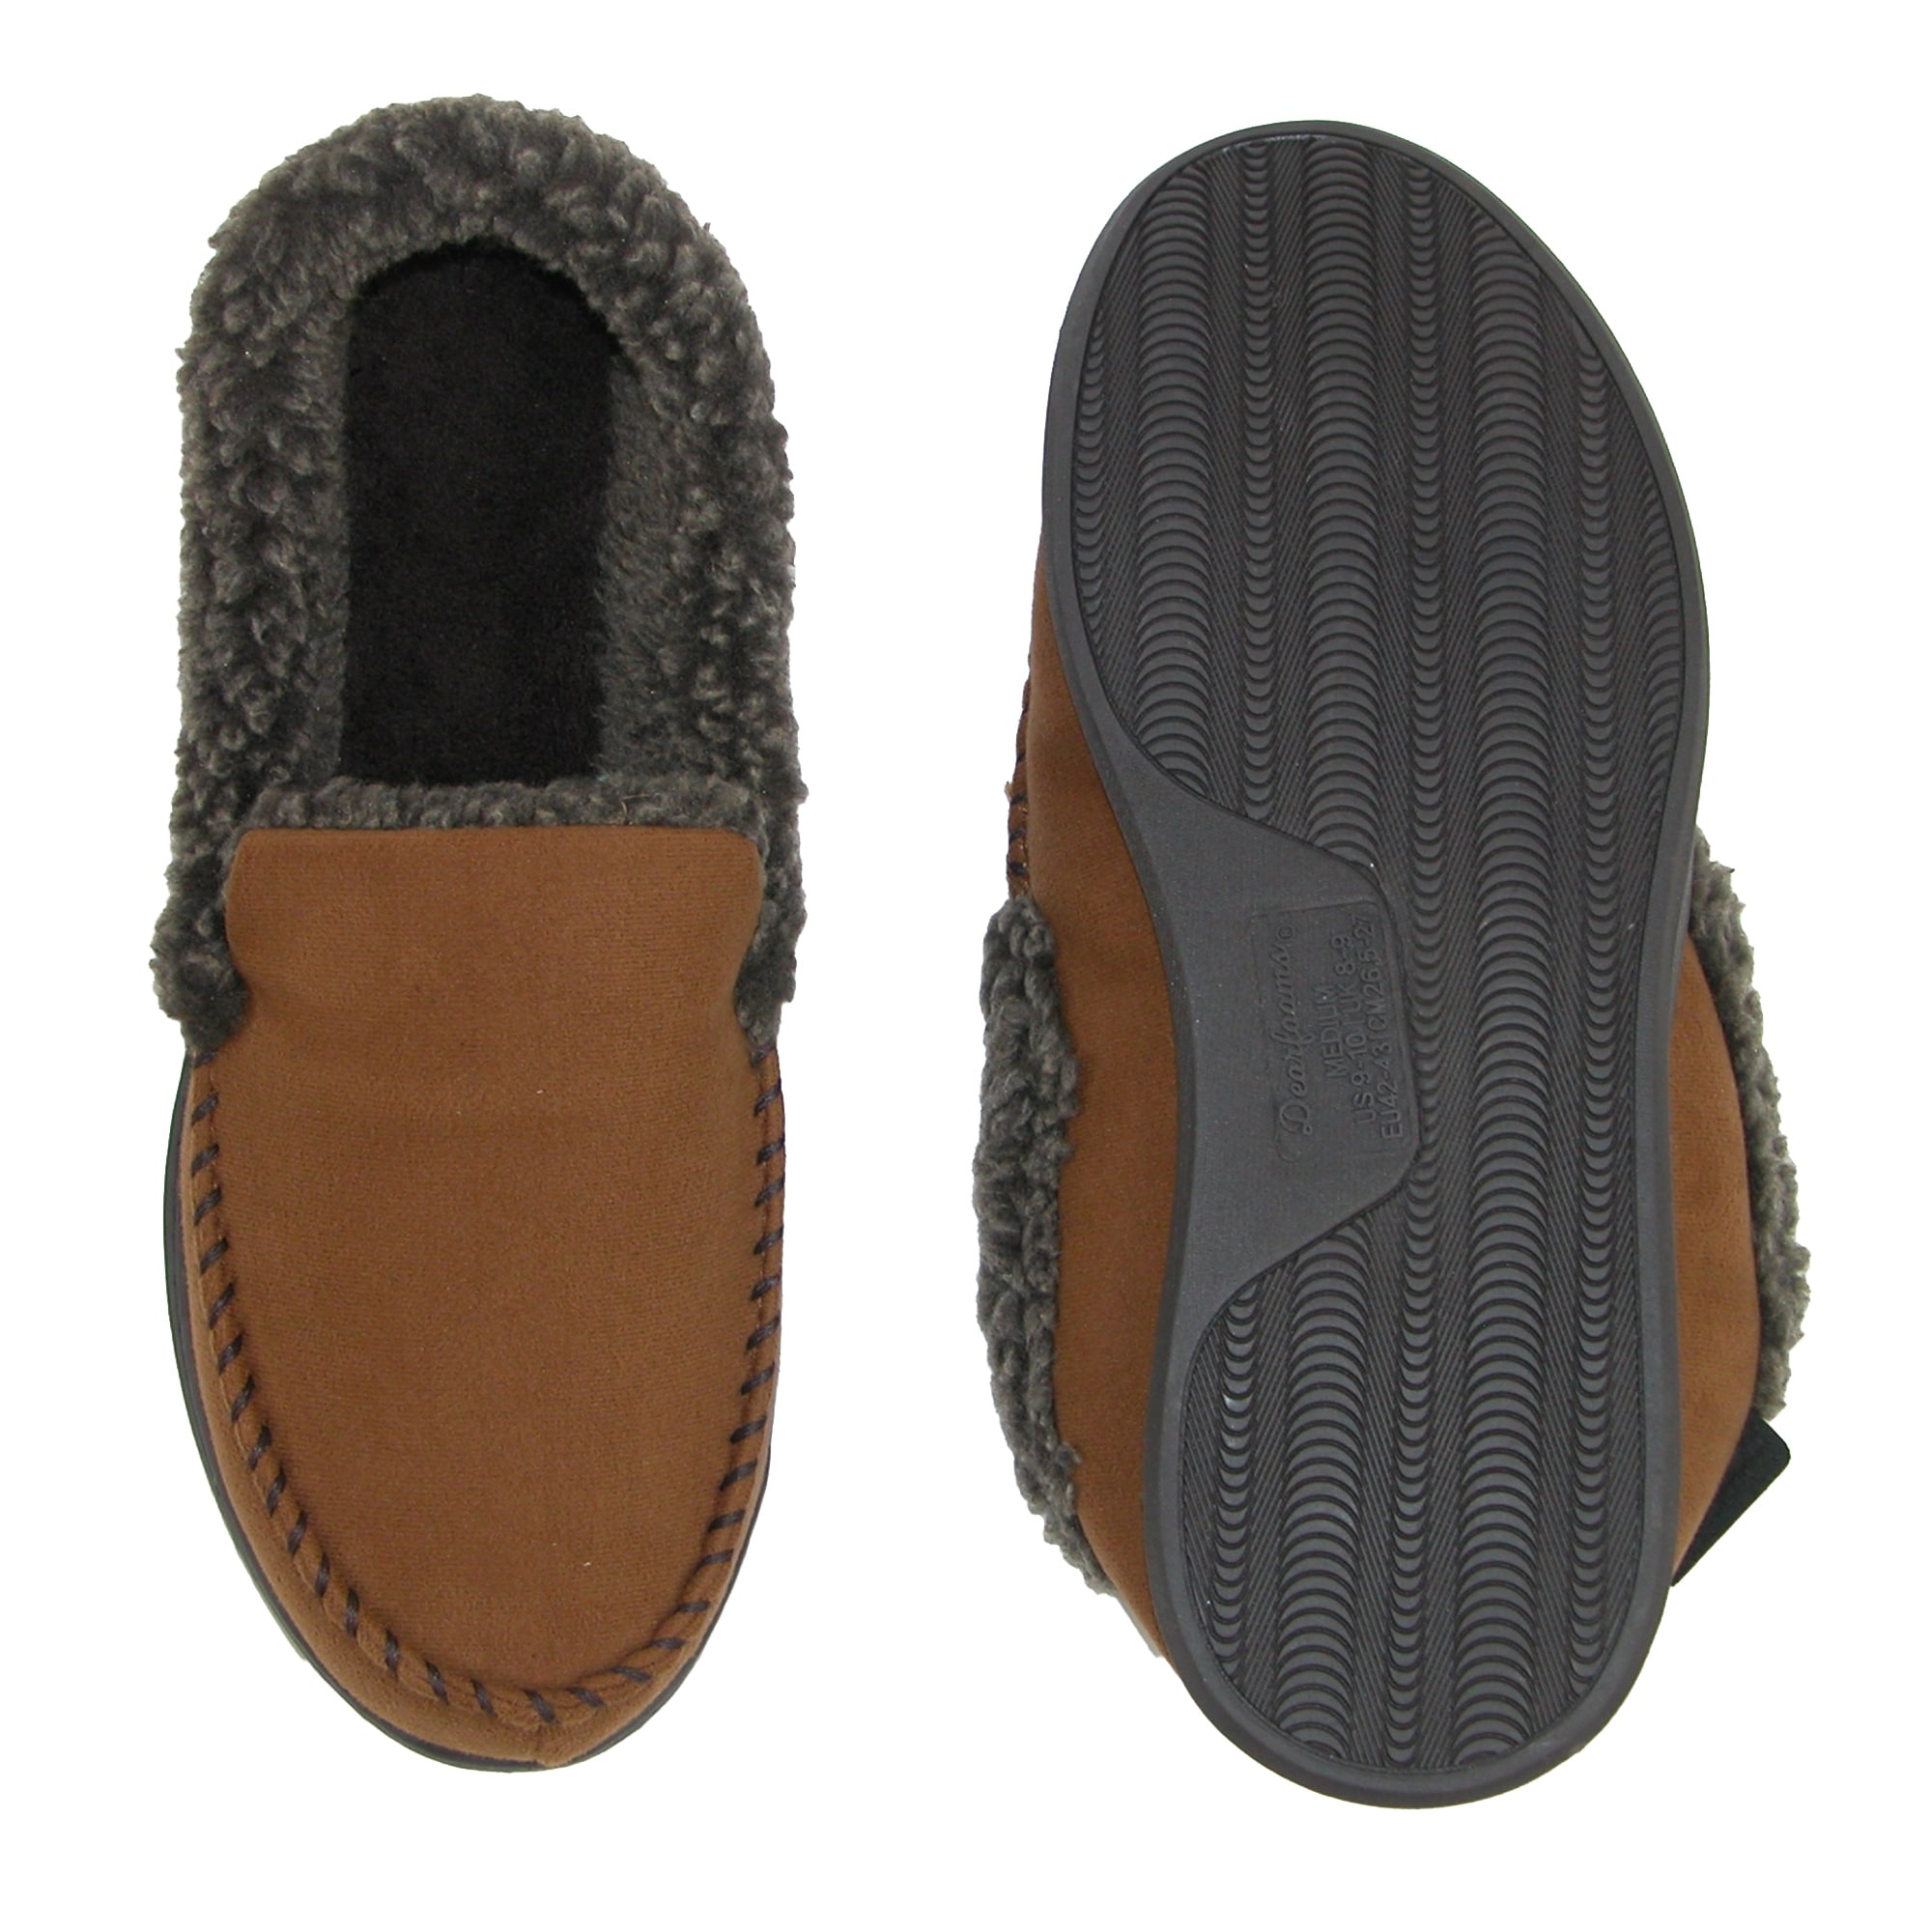 c1a73c475efb7 Shop Dearfoams Men's Wide Width Suede Moccasin with Whipstitch Detail -  Free Shipping On Orders Over $45 - Overstock - 19268245